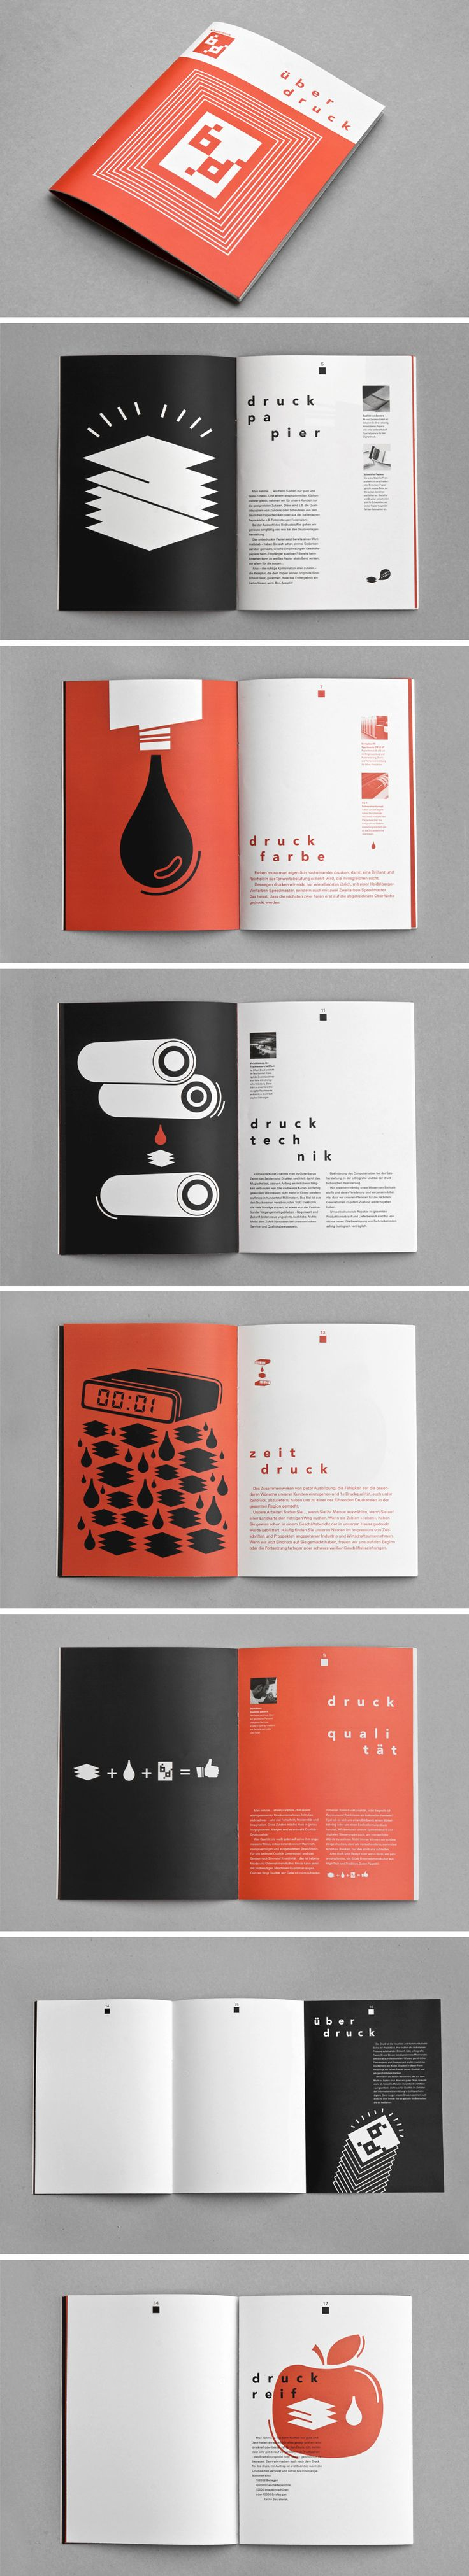 Here's some ideas of how you can use colour, style and format to provide continuity without your set of posters being all the same. [Editorial layouts by Bauerdruck print shop]